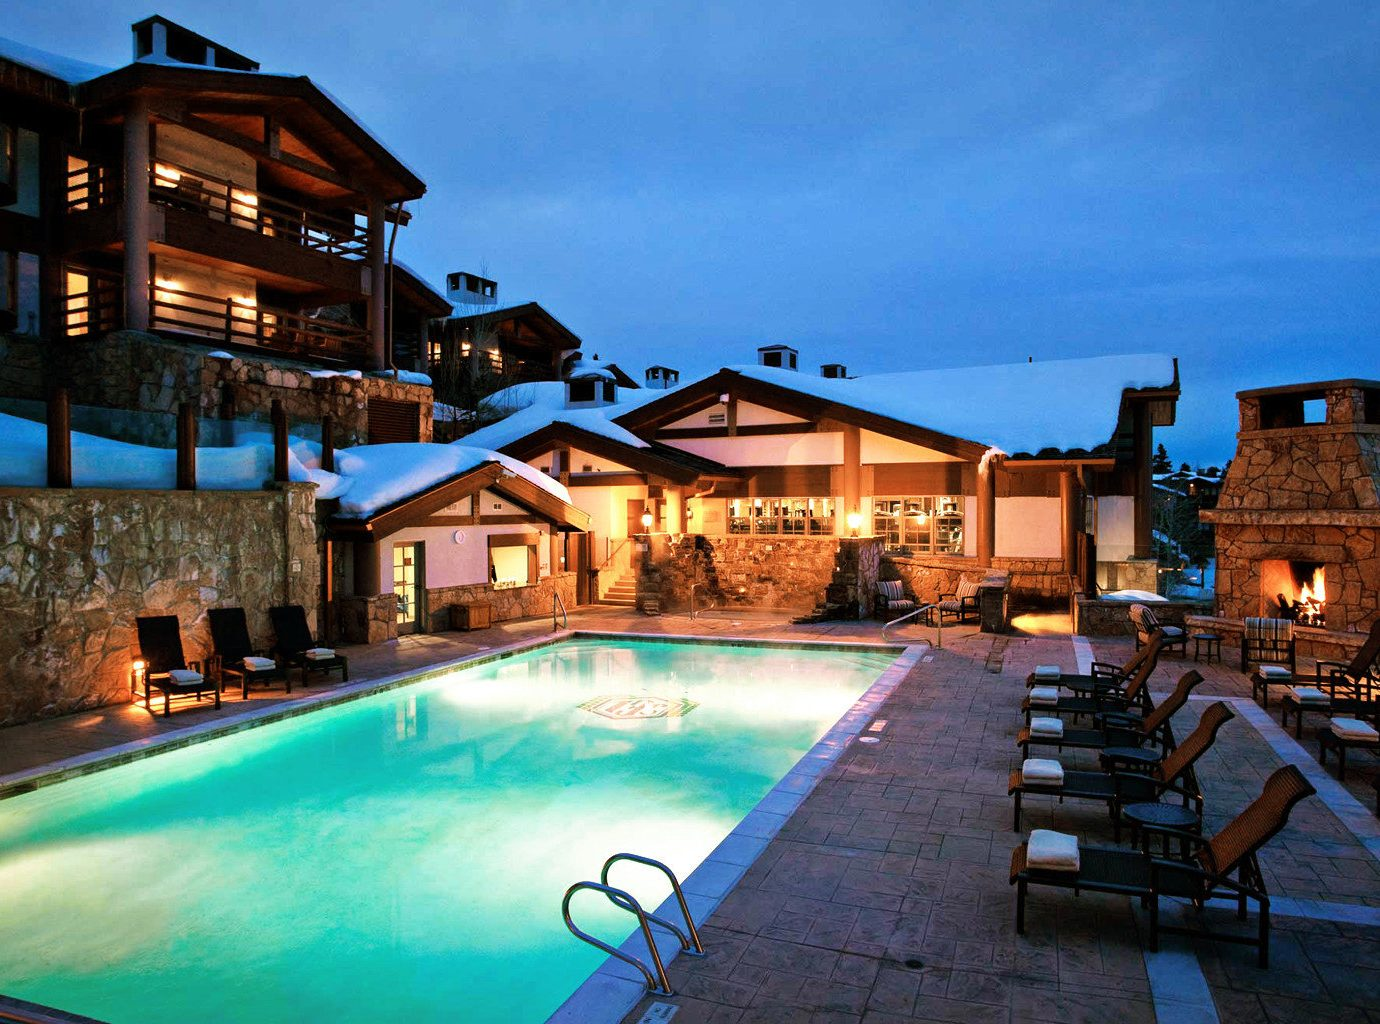 Hotels Luxury Travel Mountains + Skiing building outdoor swimming pool property estate Resort leisure vacation home Villa mansion resort town real estate backyard